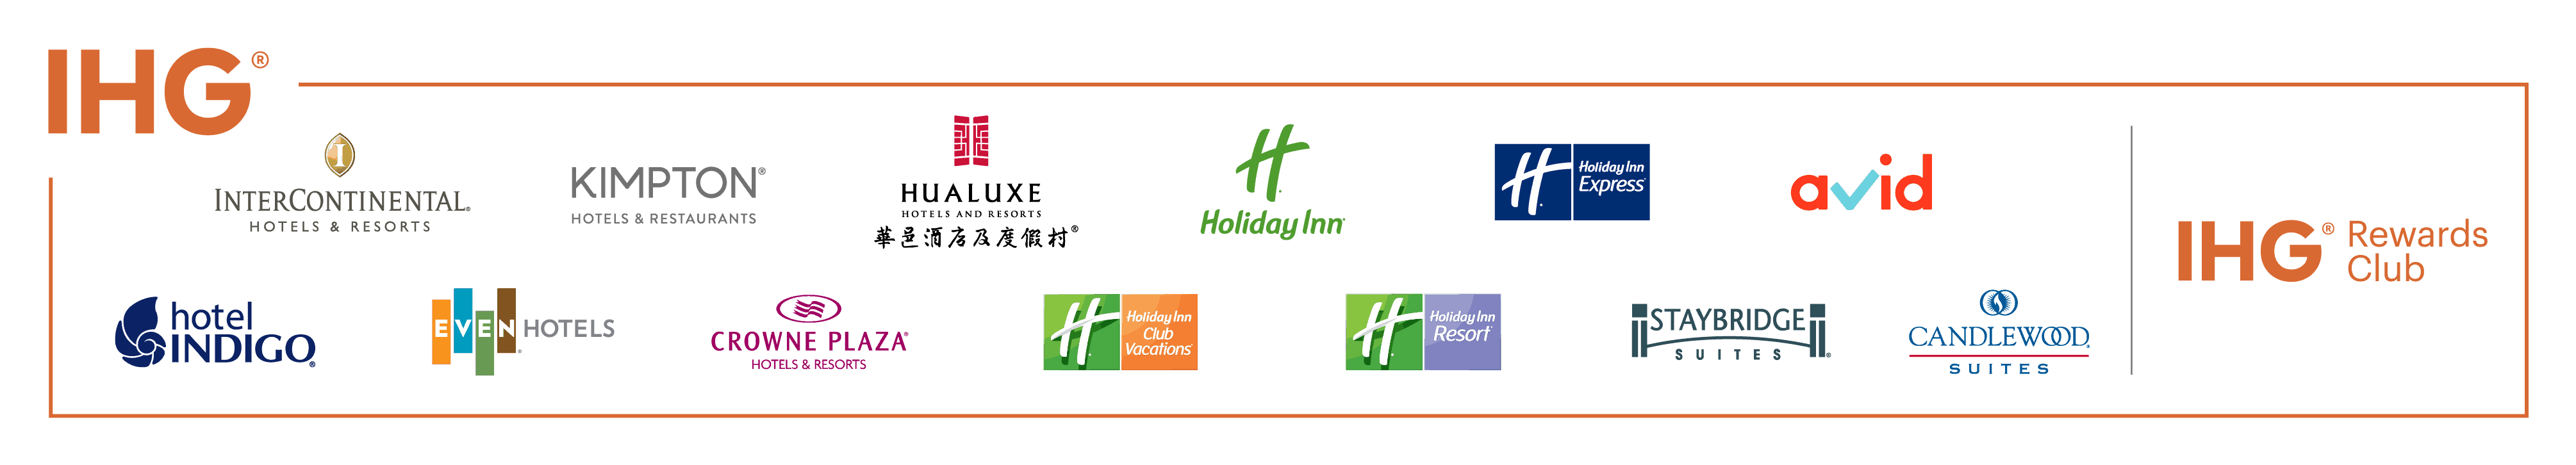 Buy IHG Points Trick – The Secret Revealed for Cheap IHG Points